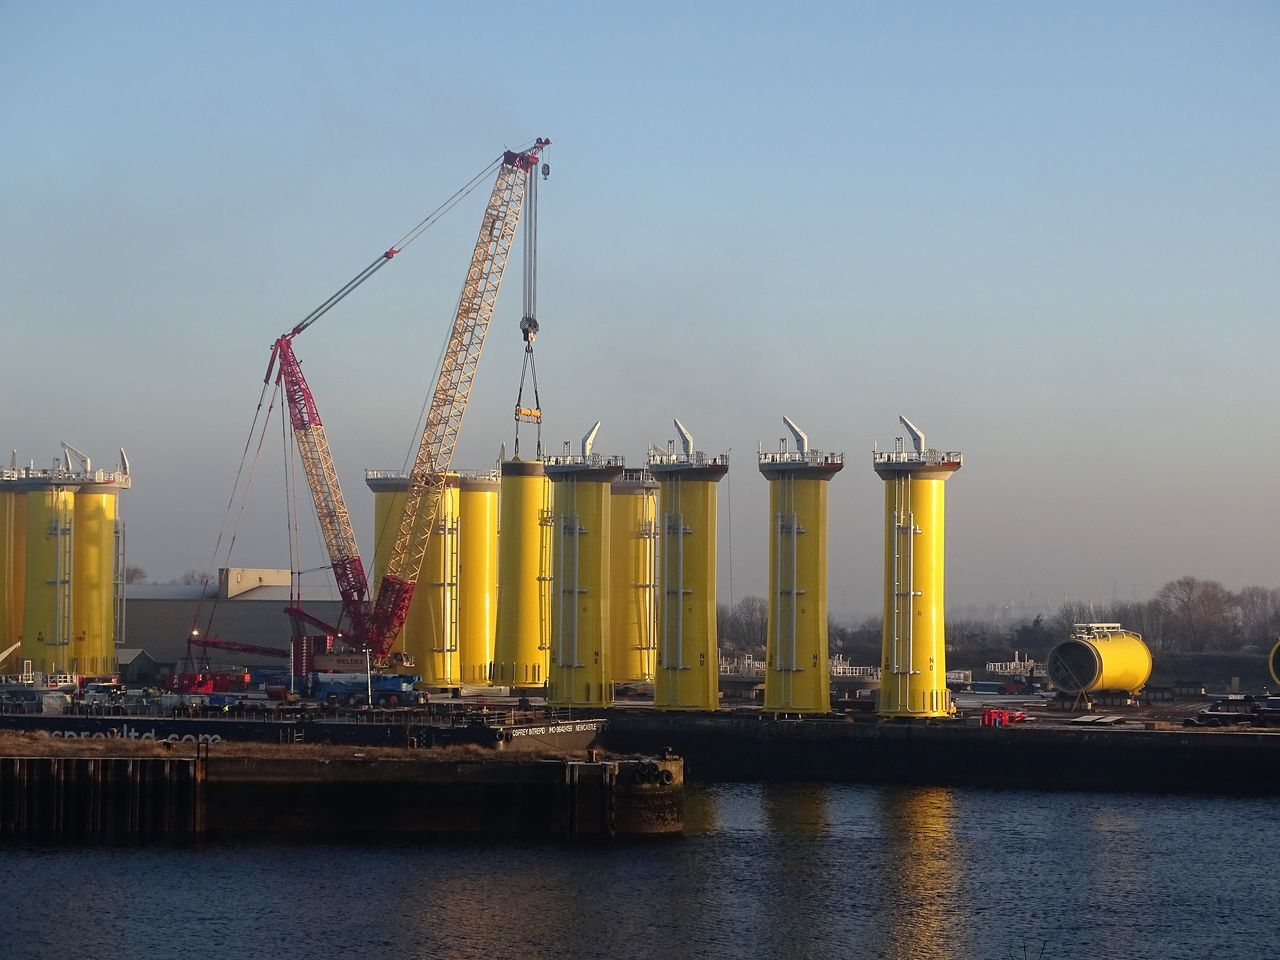 Commercial Dock Construction Crane - Construction Machinery Engineering Industry Offshore Platform Towers Wind Turbine